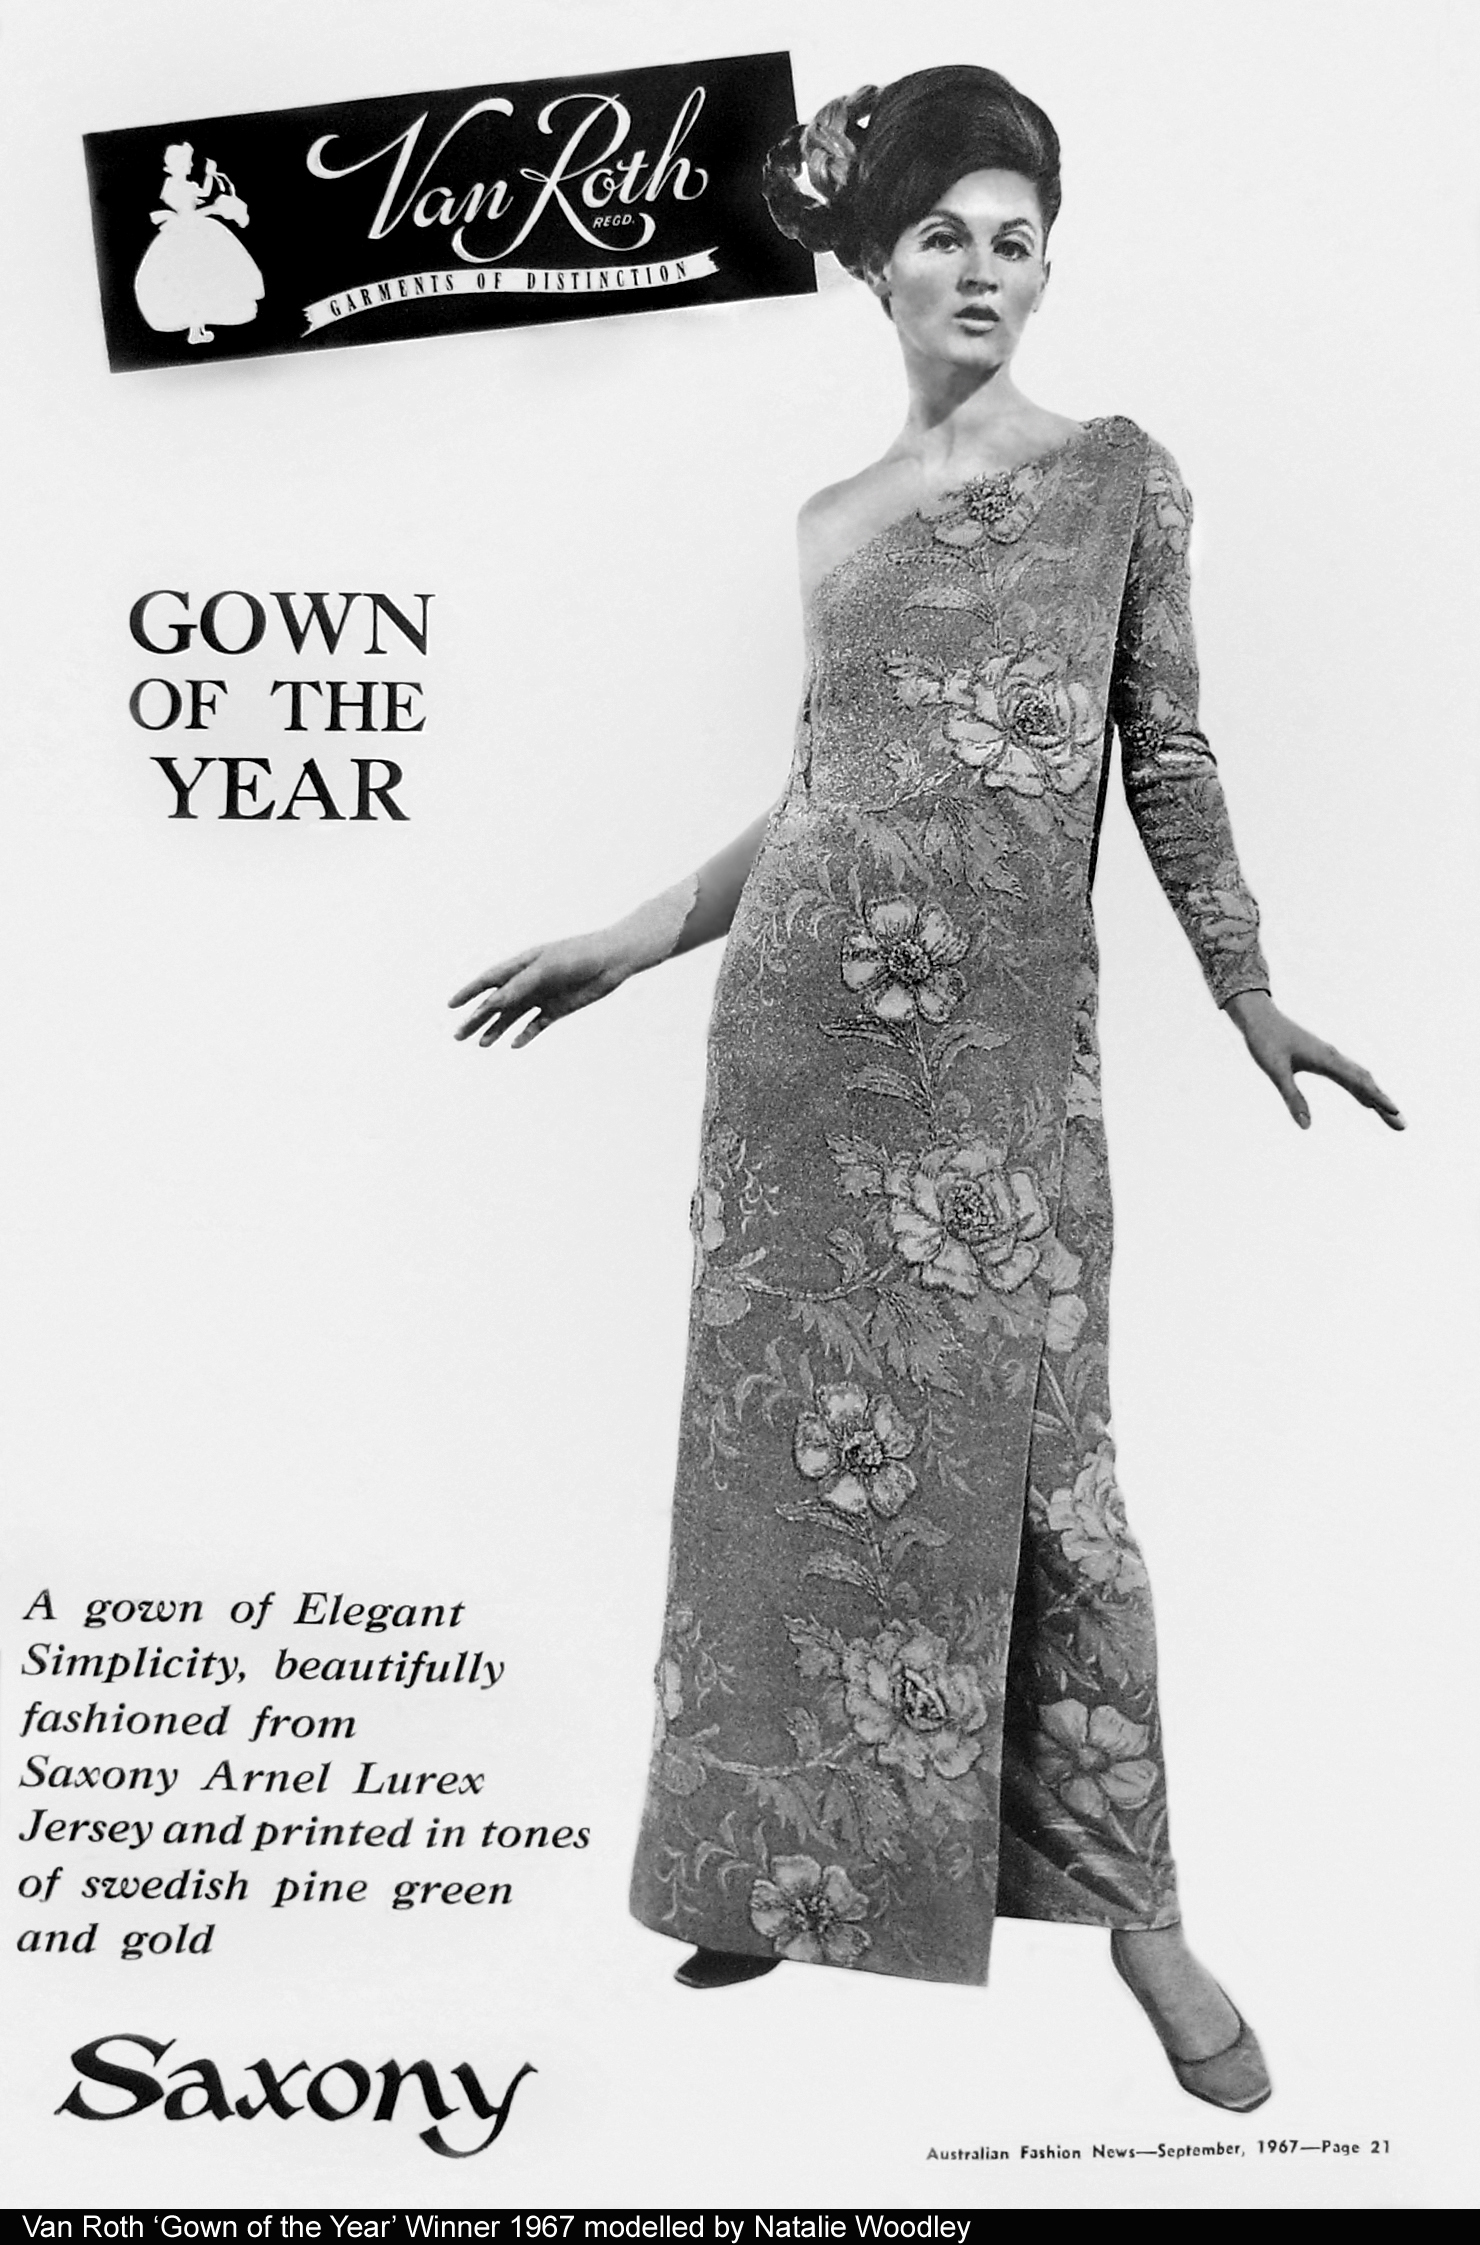 Van Roth Gown of the Year winner 1967